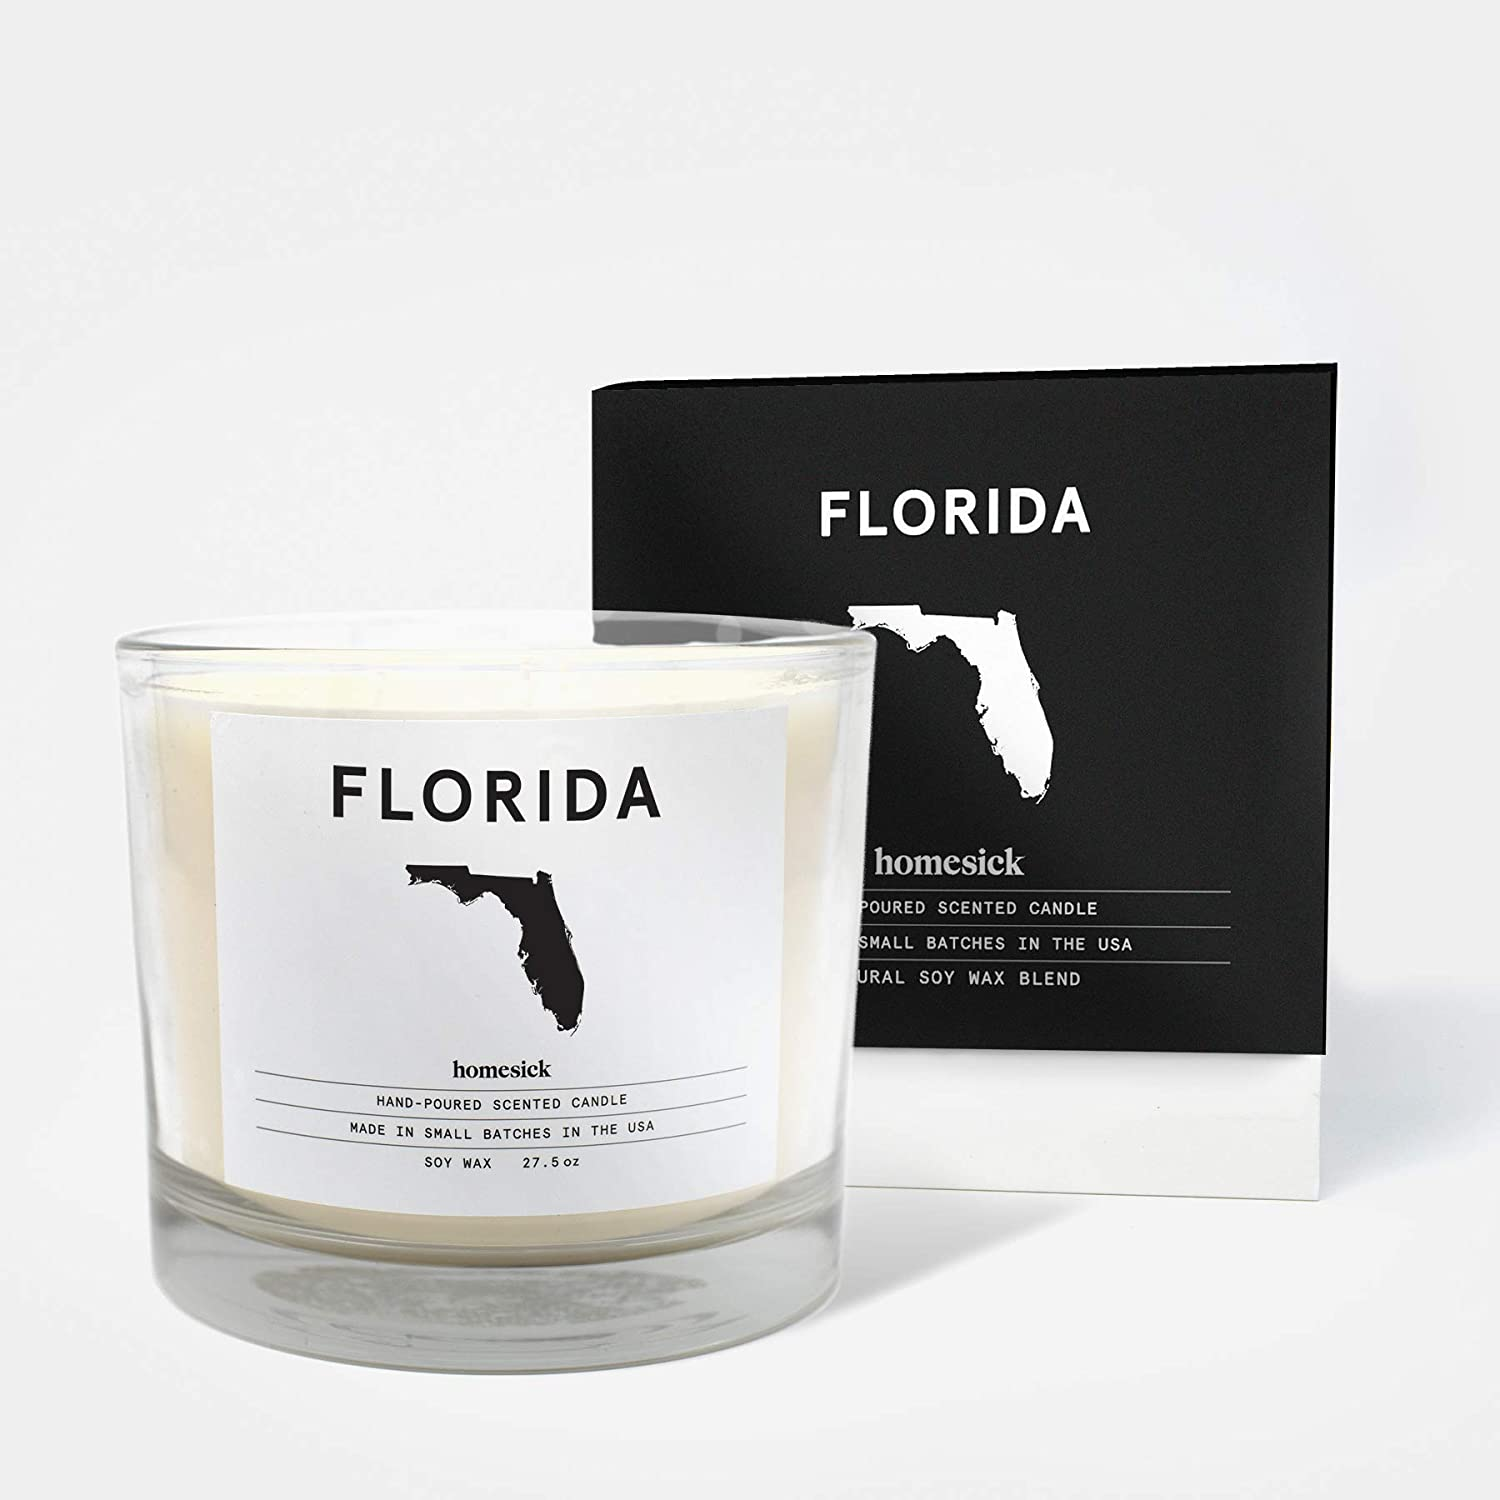 Homesick 3 Wick Scented Candle, Soy Wax - 27.5 oz (90 to 110 hrs Burn Time) Florida